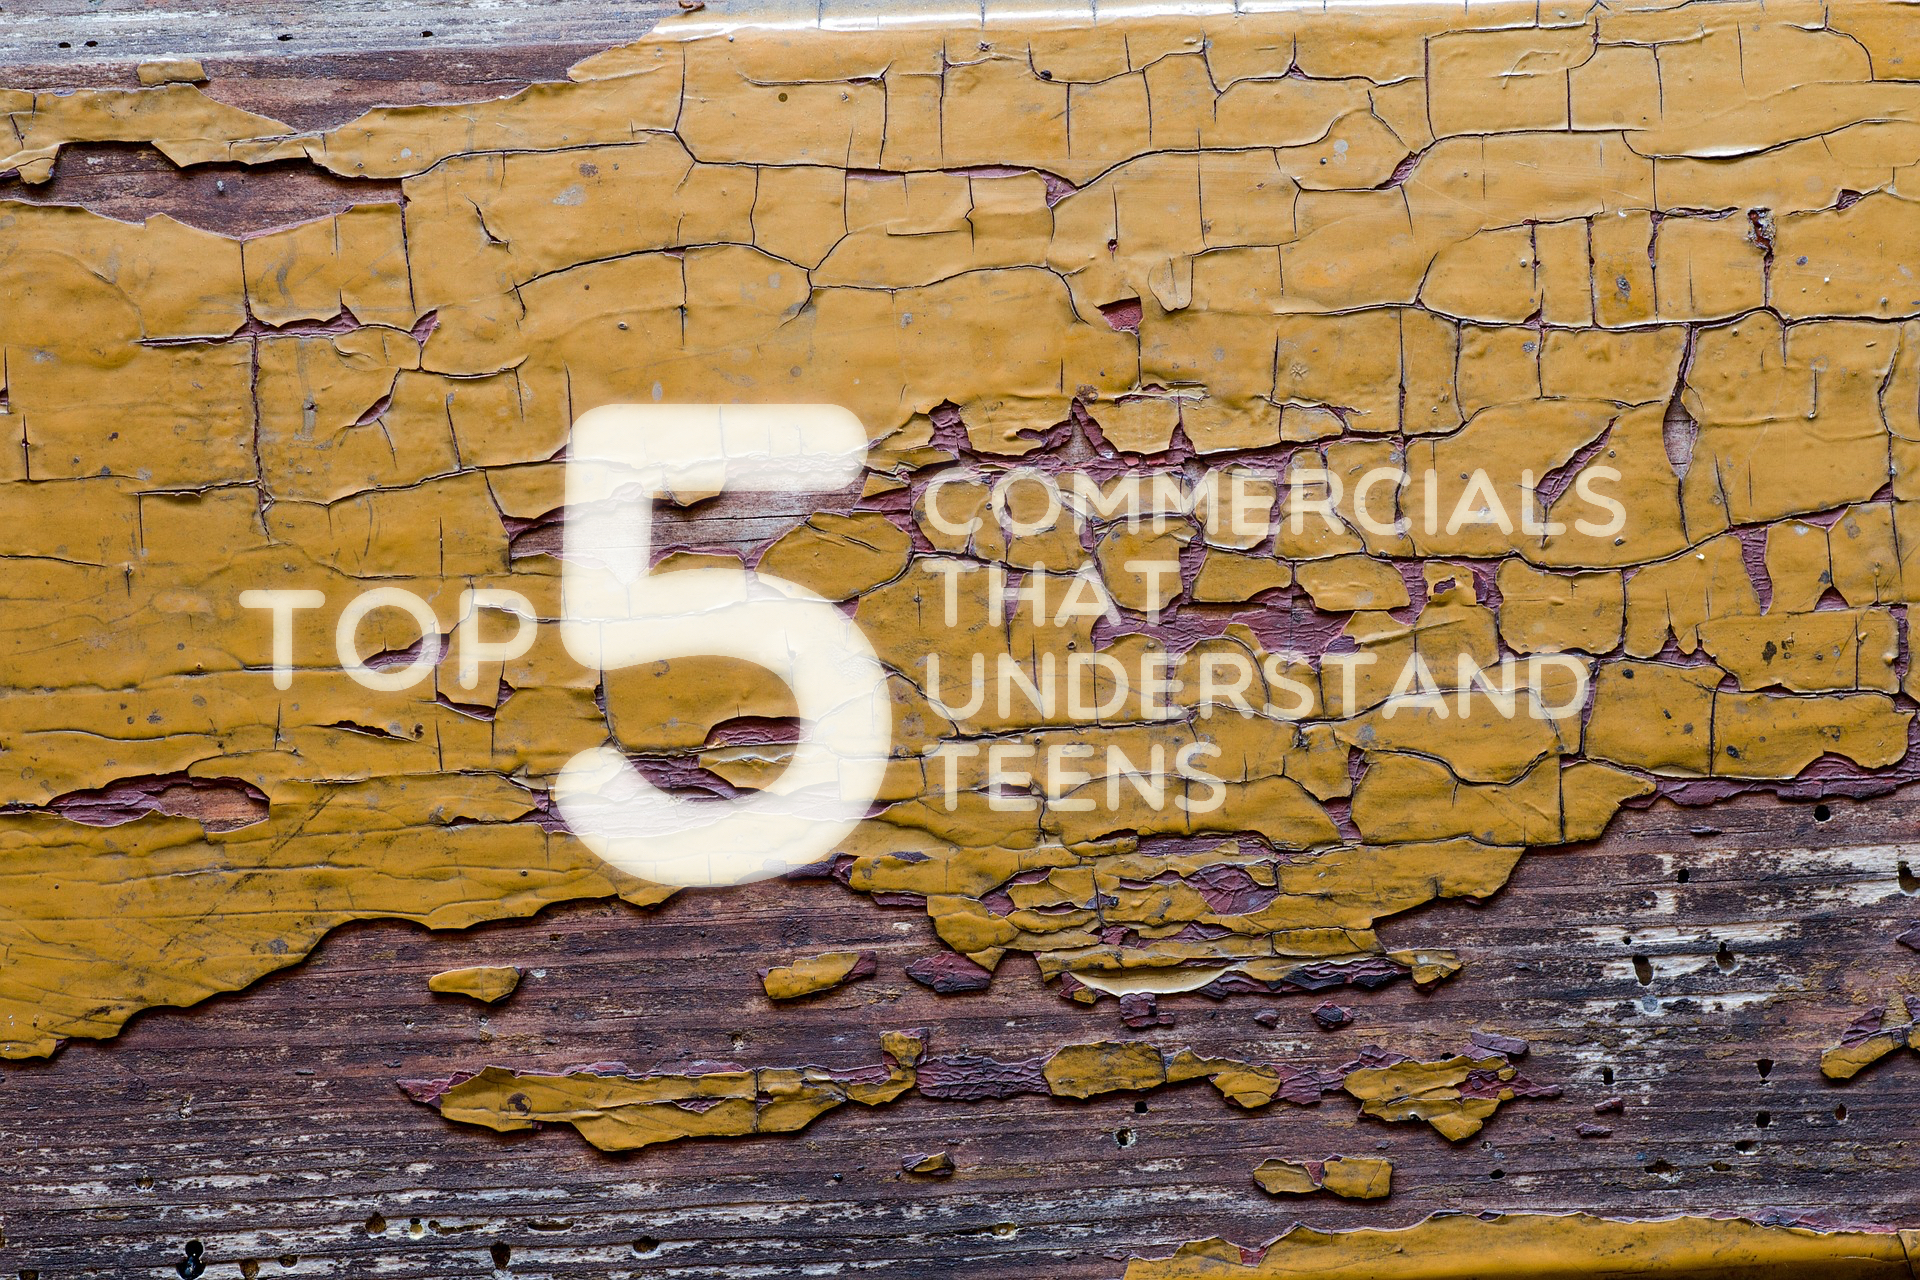 Top 5 Commercials that Understand Teens